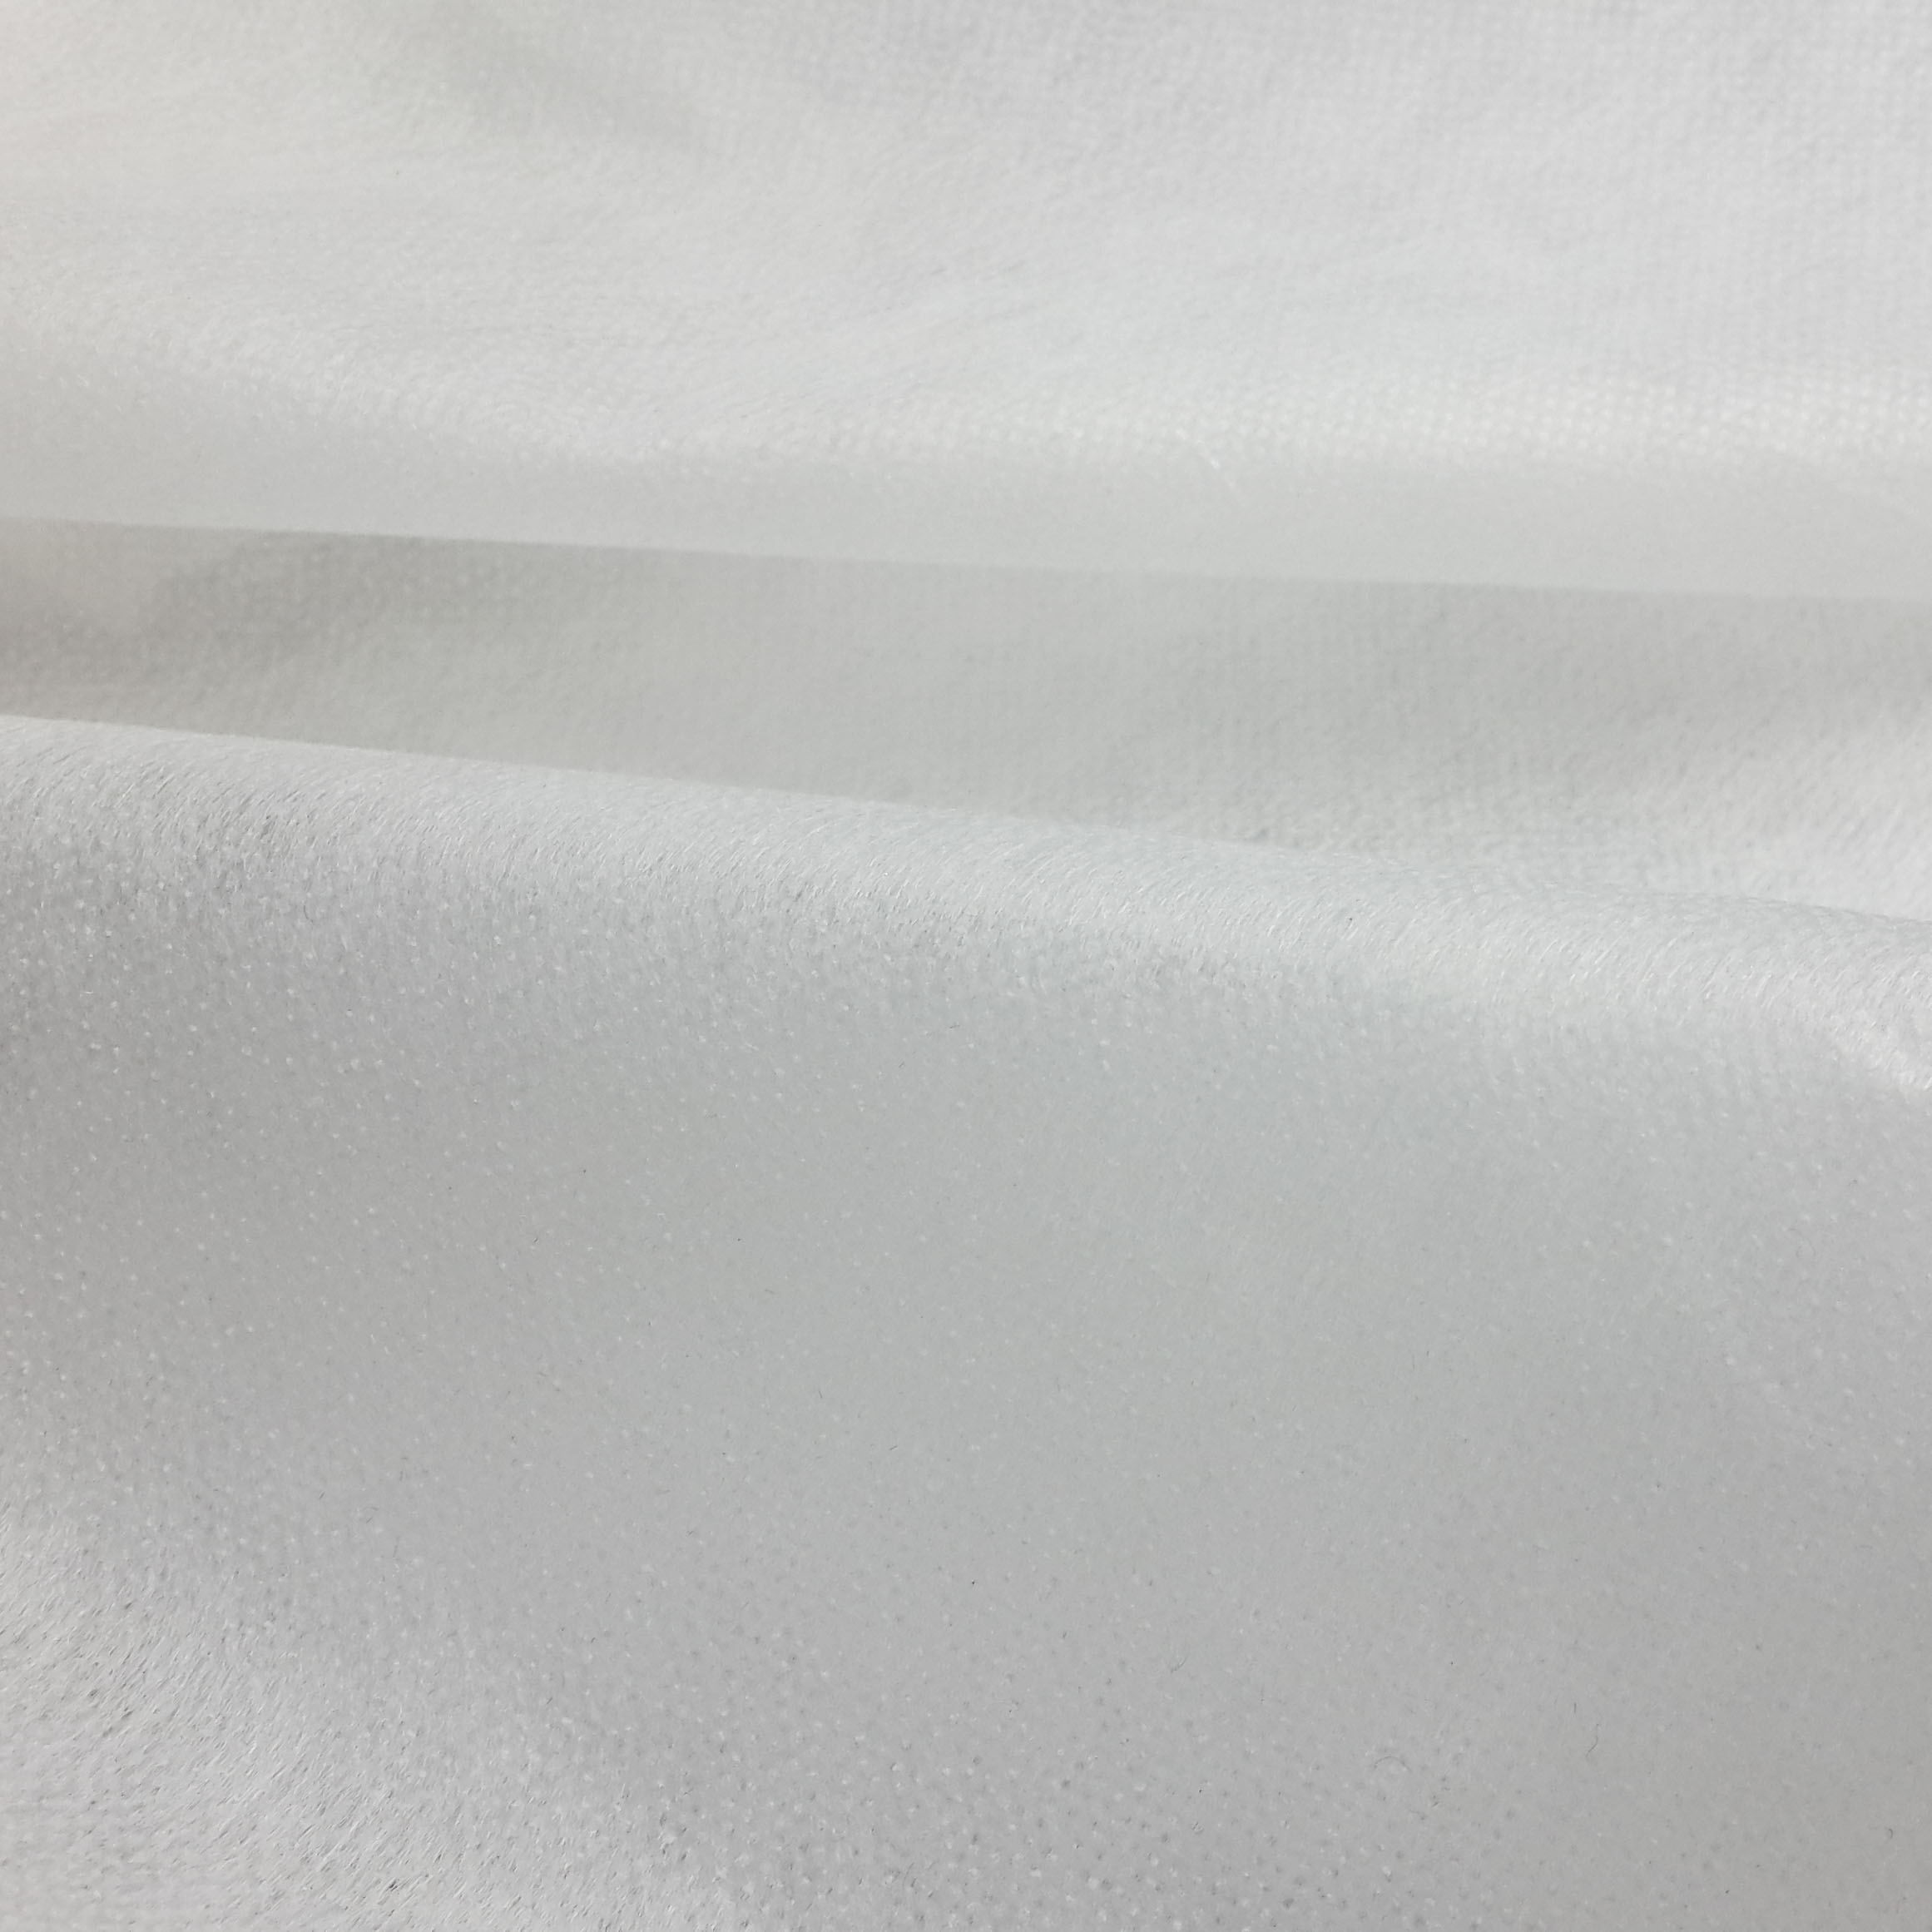 Clothing accessories interlining cloth lining silk chiffon lining lining lining spring and autumn chiffon lining collar lining